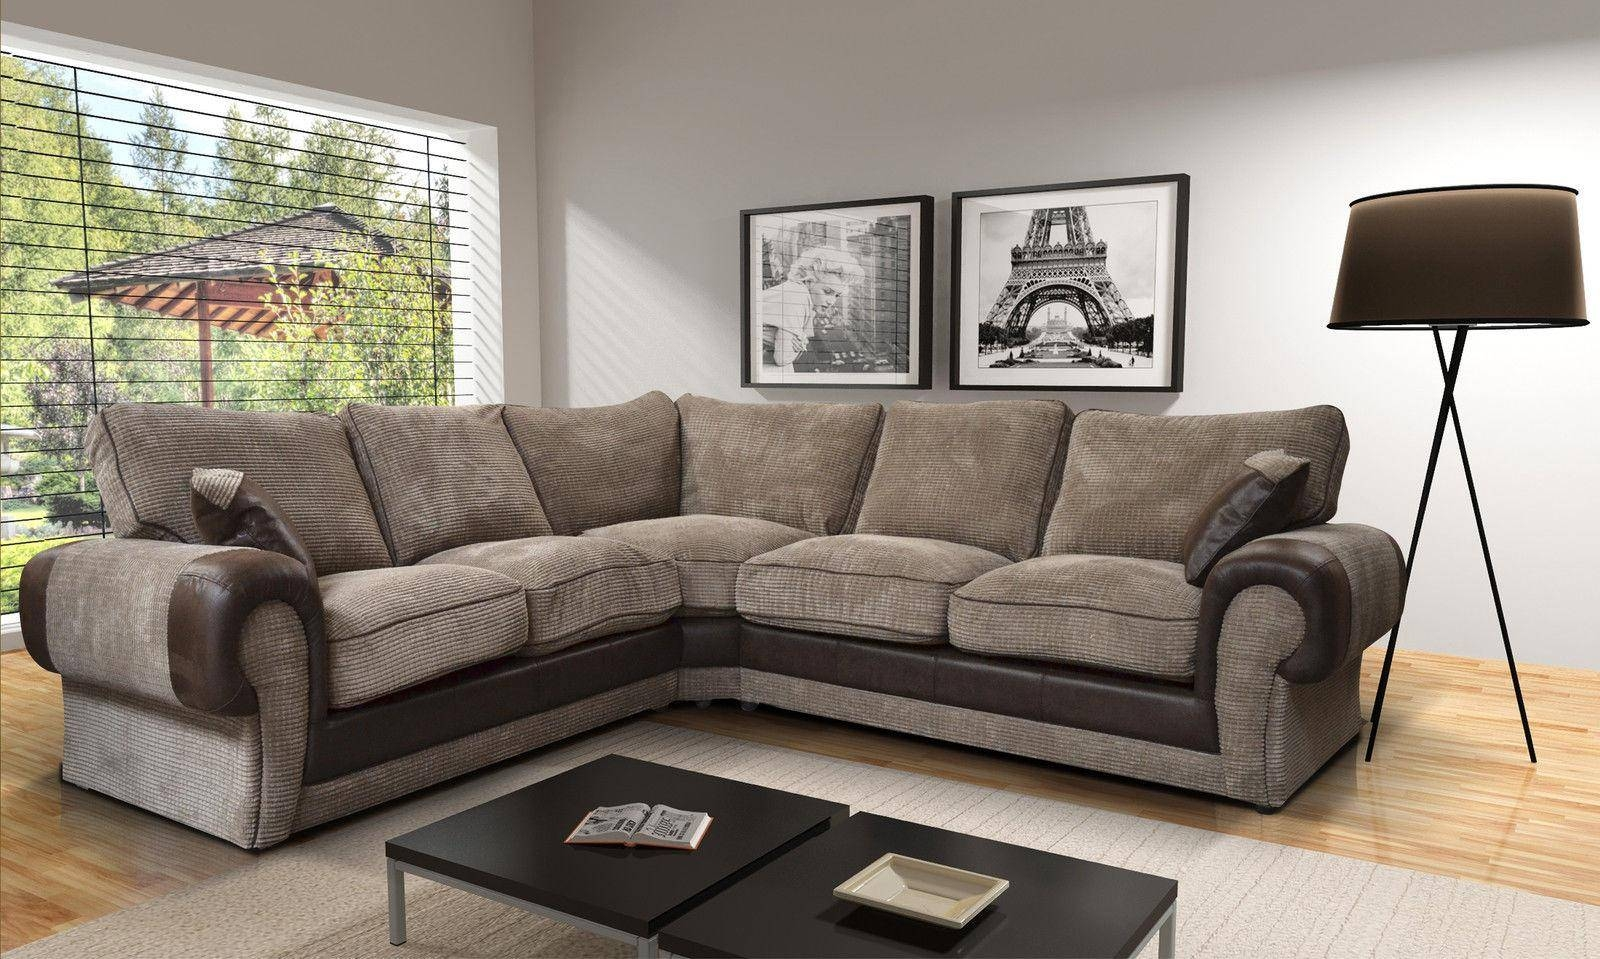 Mayfair Corner Sofa - Dublin, Ireland Furniture Store | Rightstyle pertaining to Corner Sofa Chairs (Image 23 of 30)